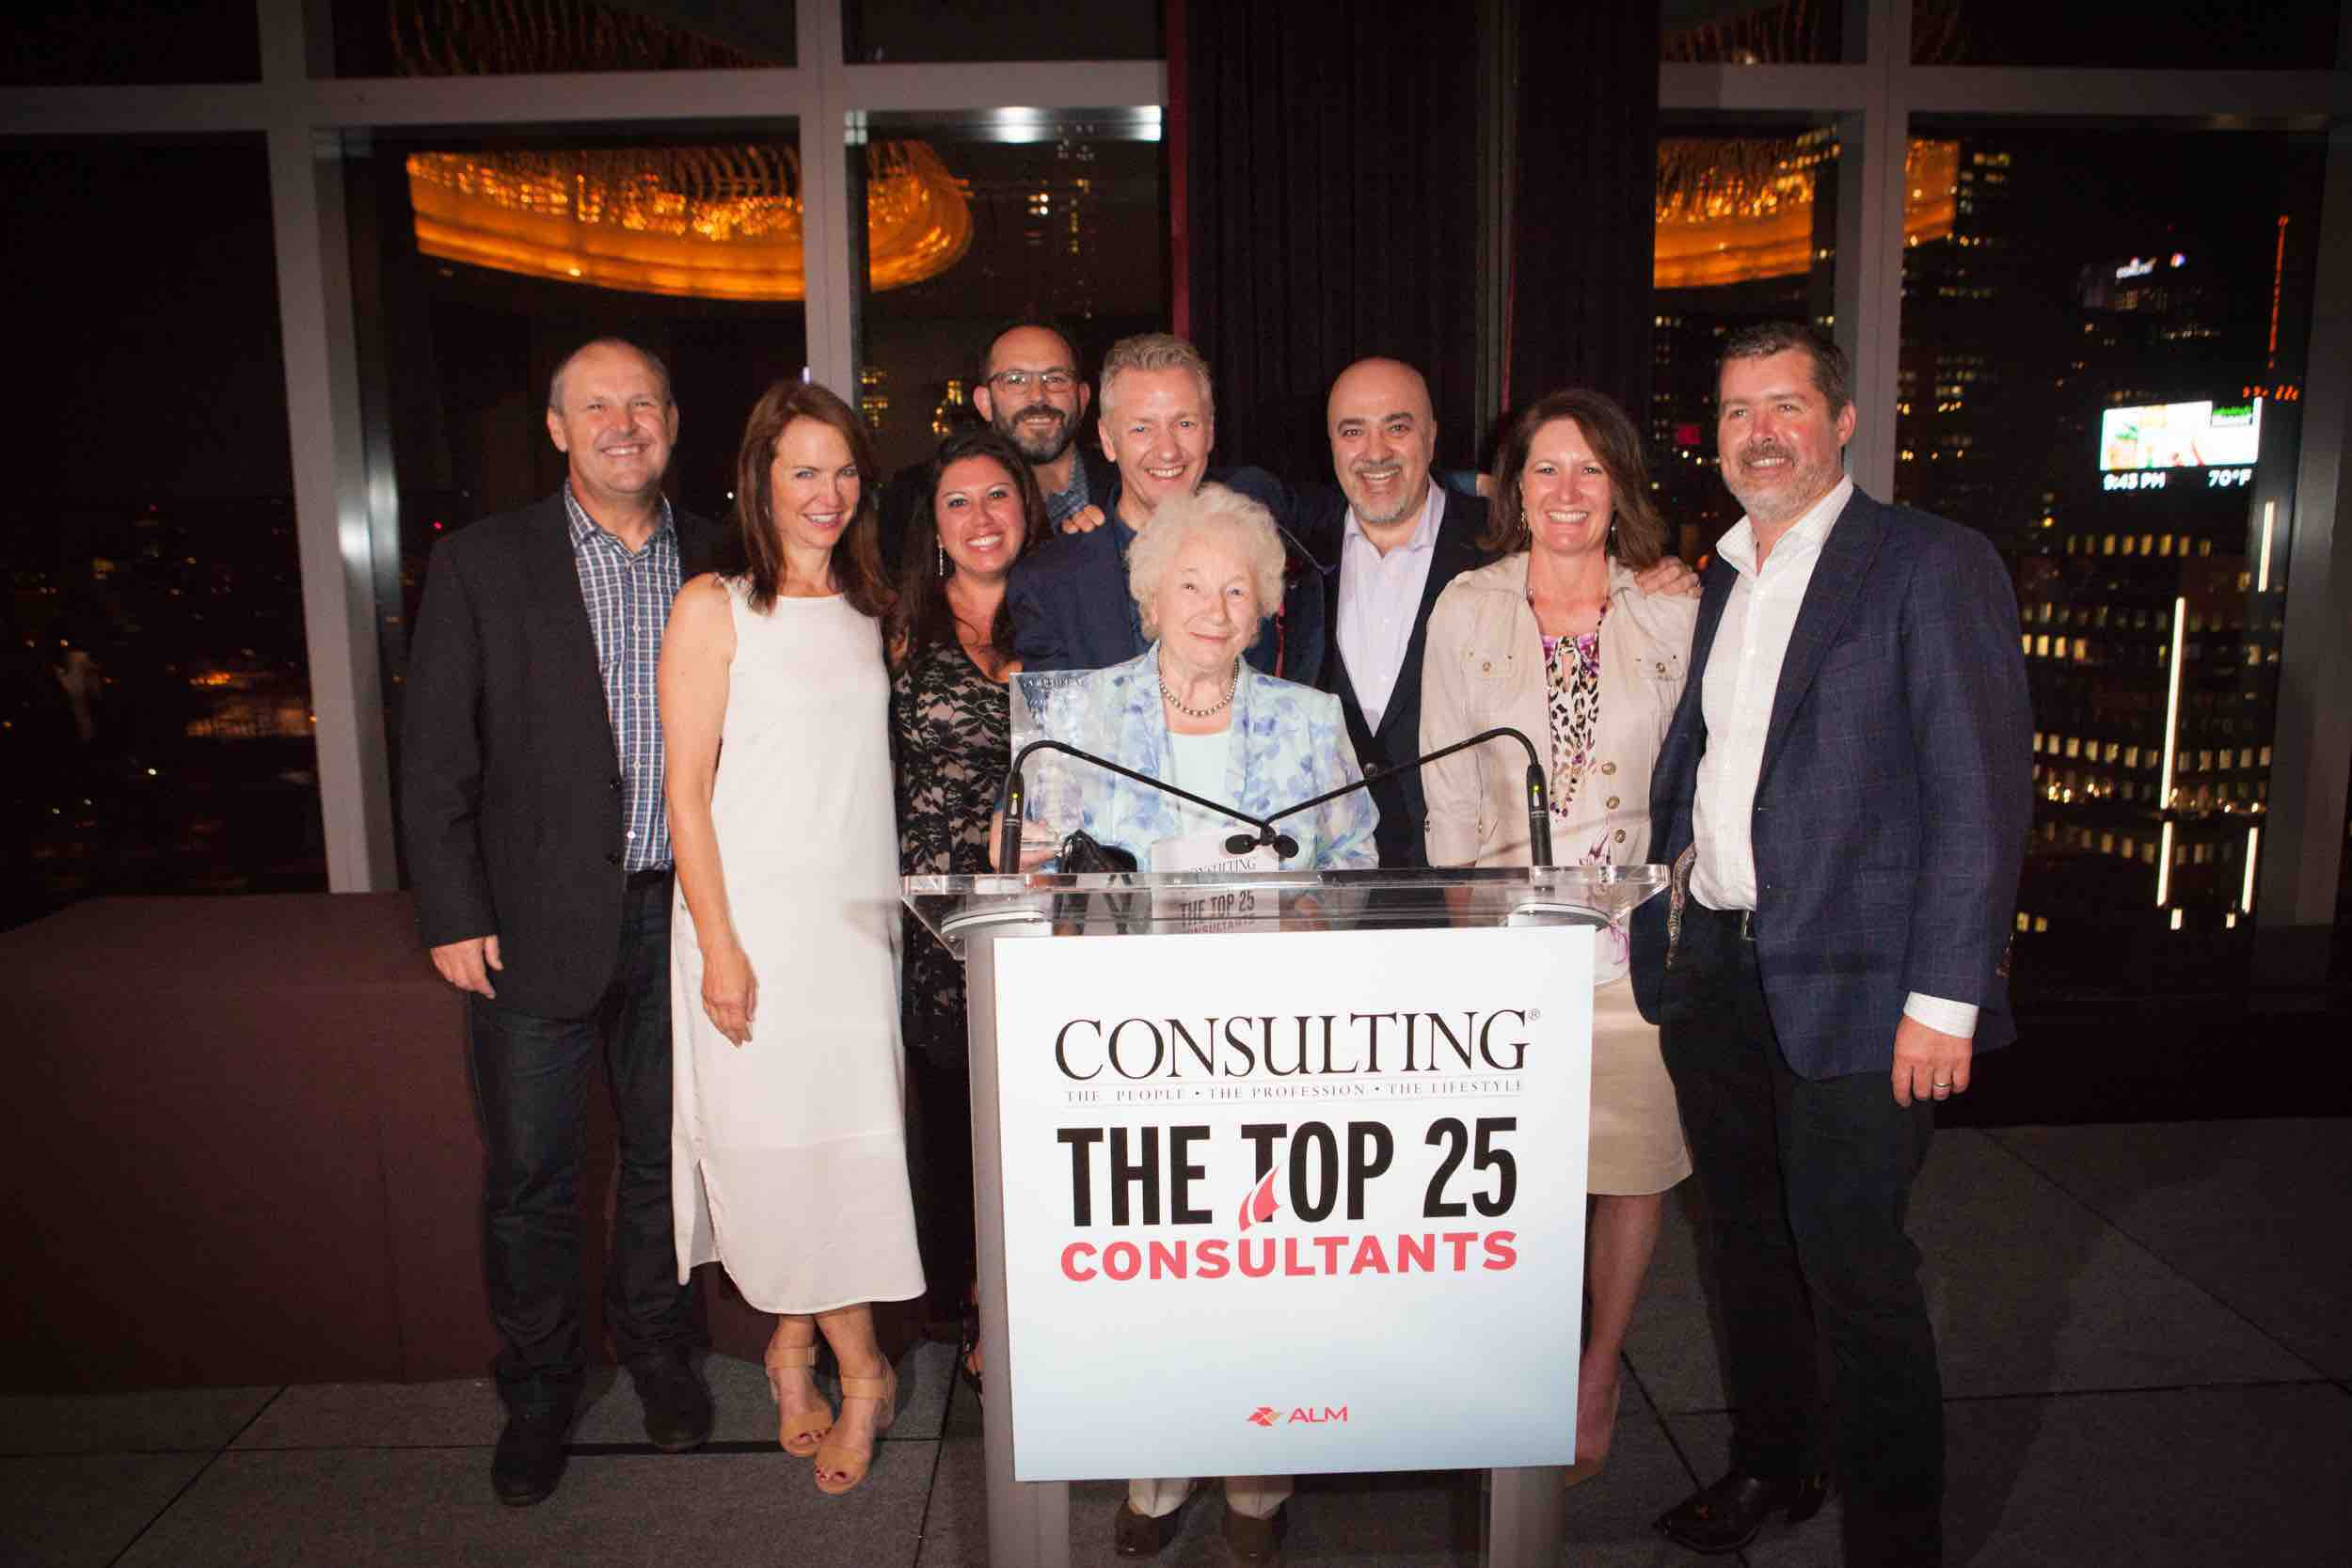 <a href=&quot;https://www.eiseverywhere.com/ehome/227541/506643/&quot;>What's Next? The 2017 Top 25 Consultants Gala: Thursday, June 15, Mandarin Oriental, New York</a>